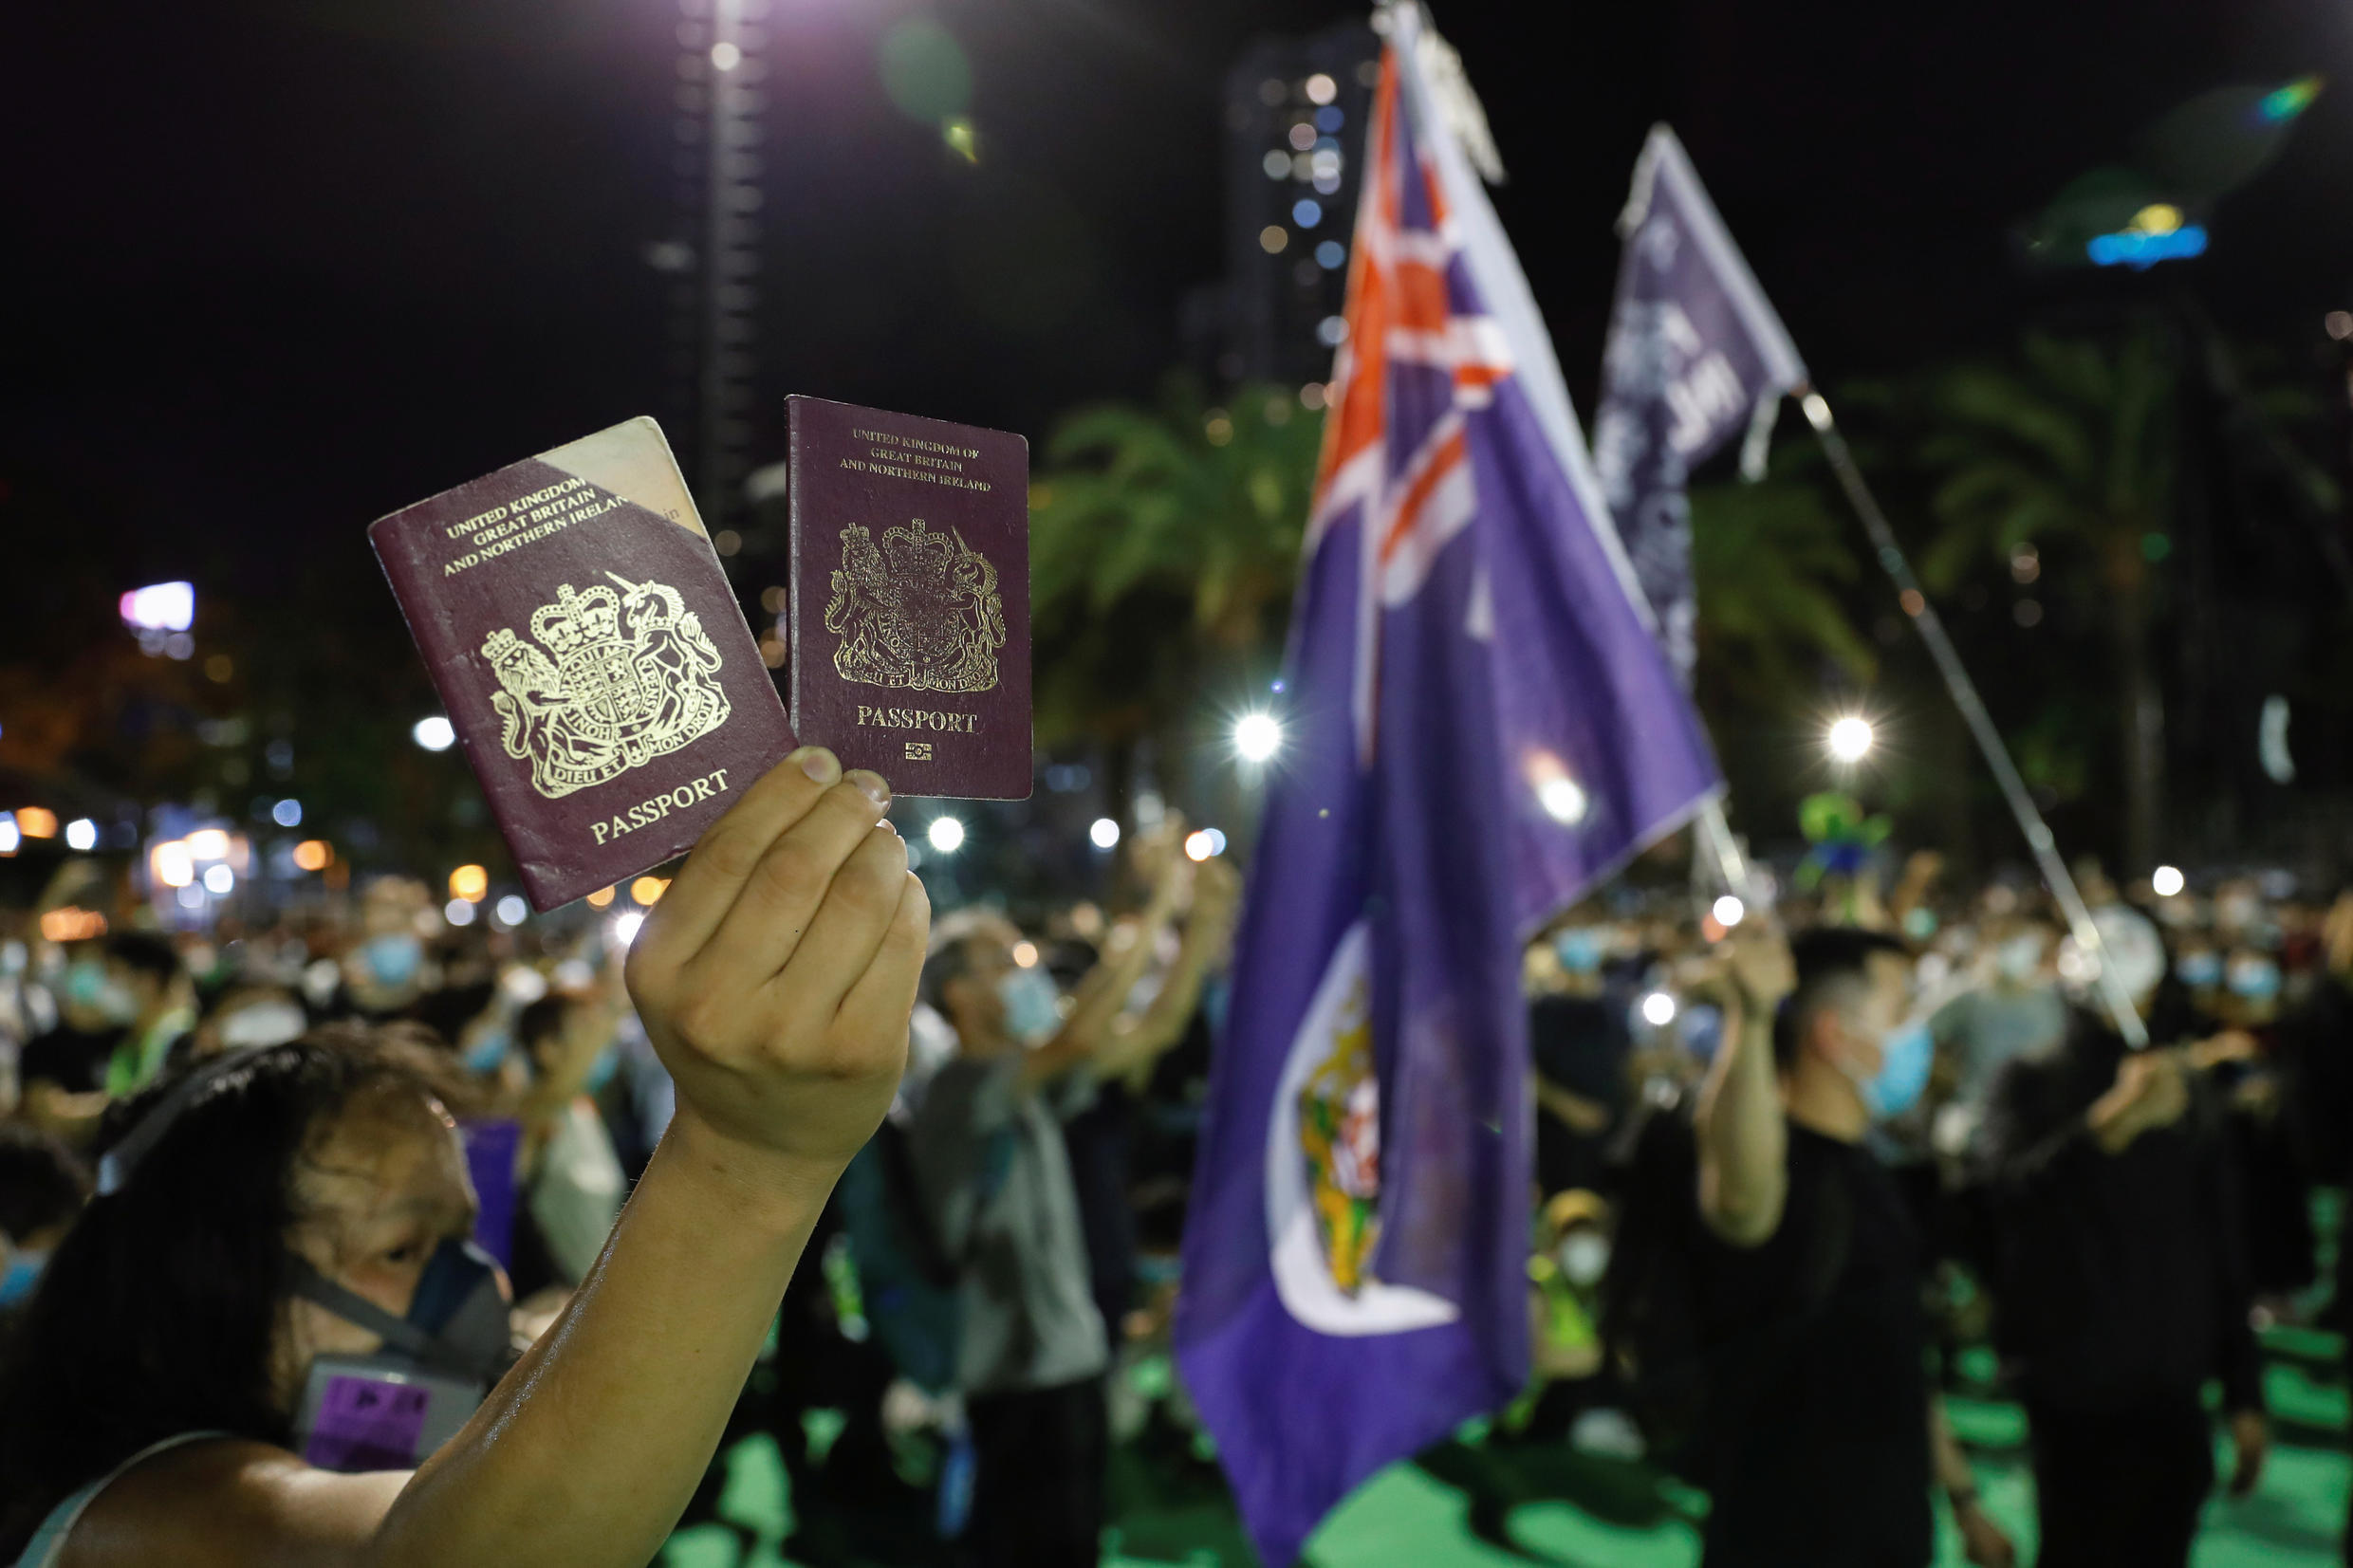 A protester displays his British passport abroad during a demonstration to commemorate the Tiananmen Square Massacre in Hong Kong on June 4, 2020.